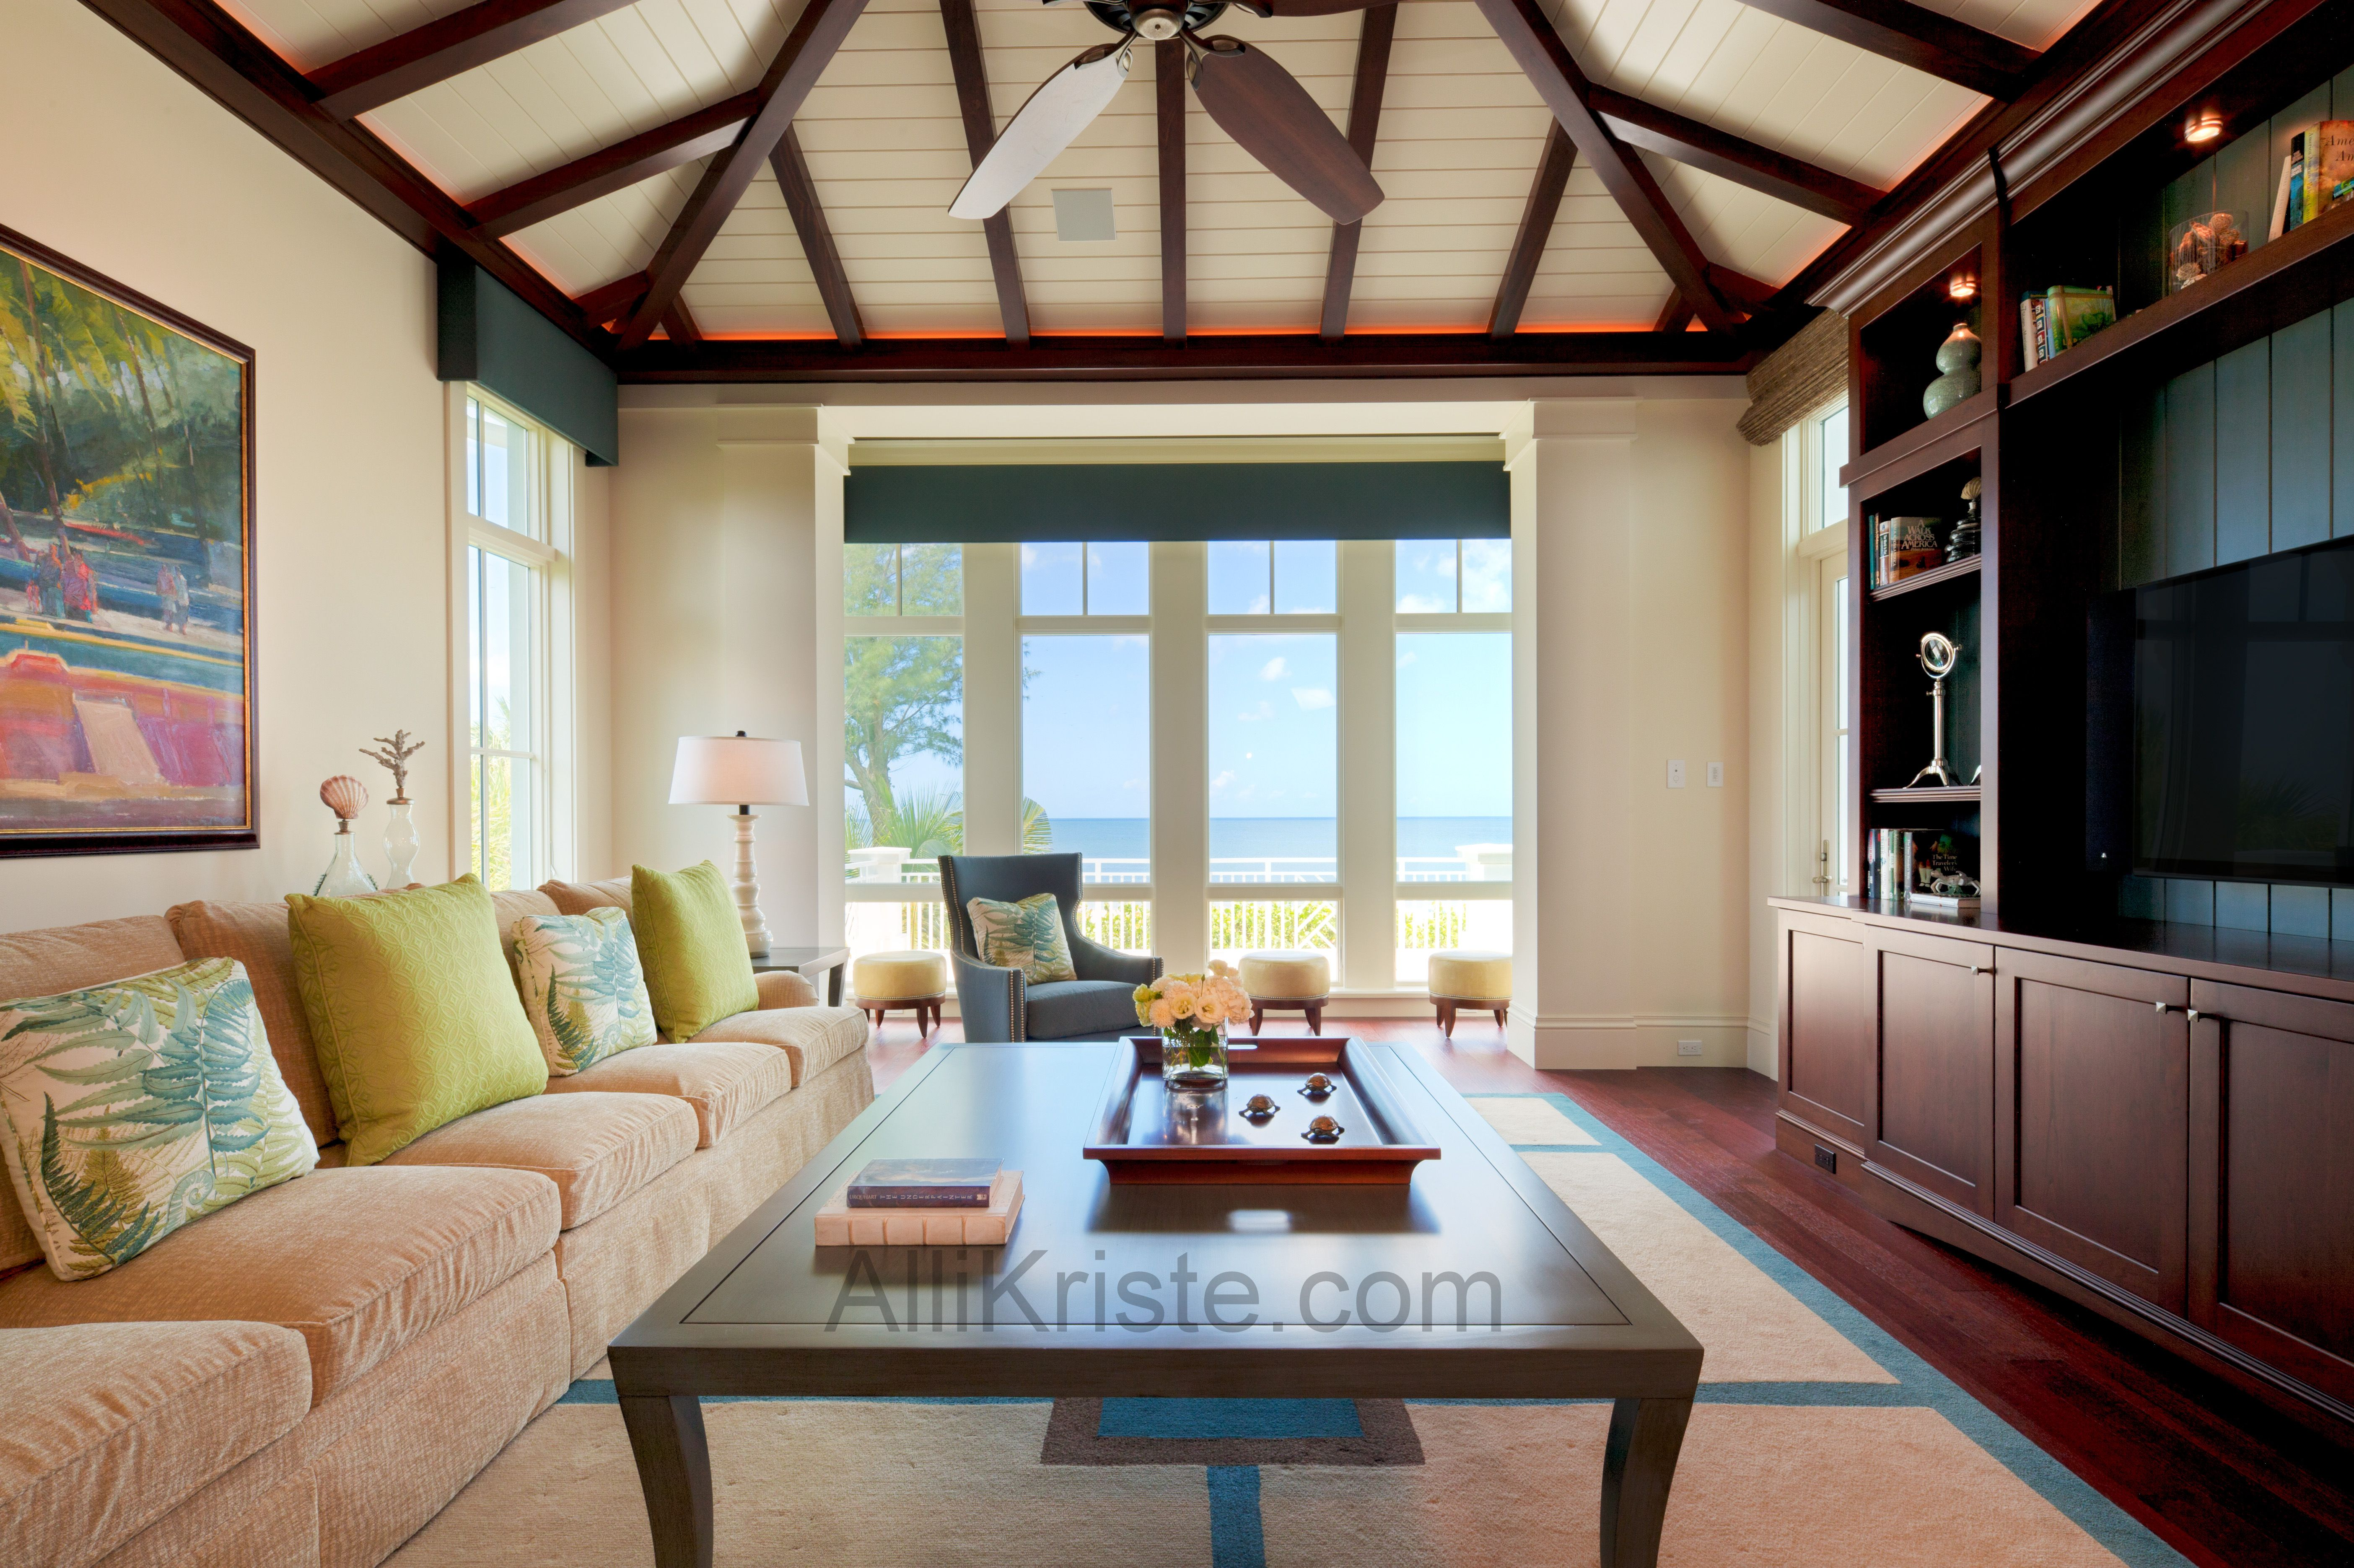 Custom cabinetry for your family room design cabinets